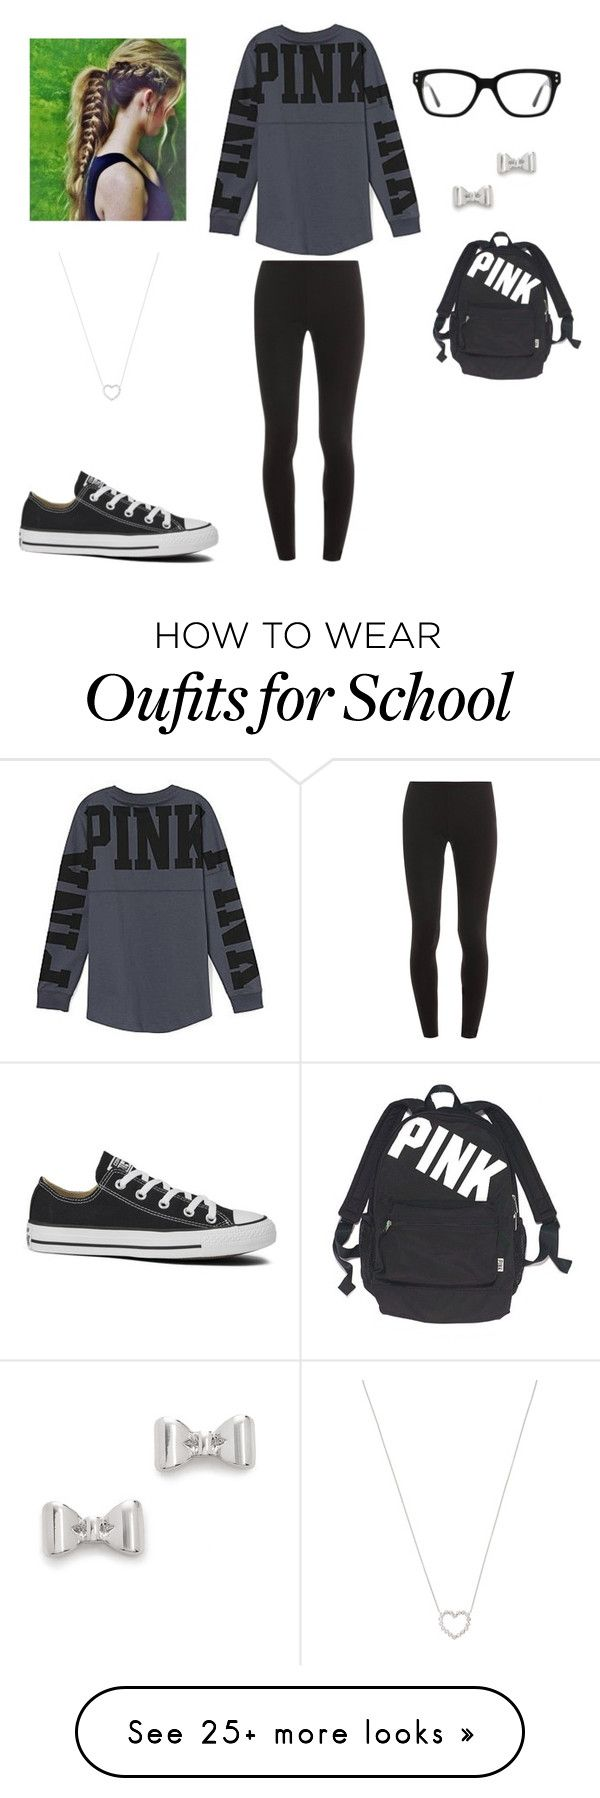 """School"" by emmakielsmeier on Polyvore featuring Victoria's Secret, Splendid, Converse, Marc by Marc Jacobs and Tiffany & Co."